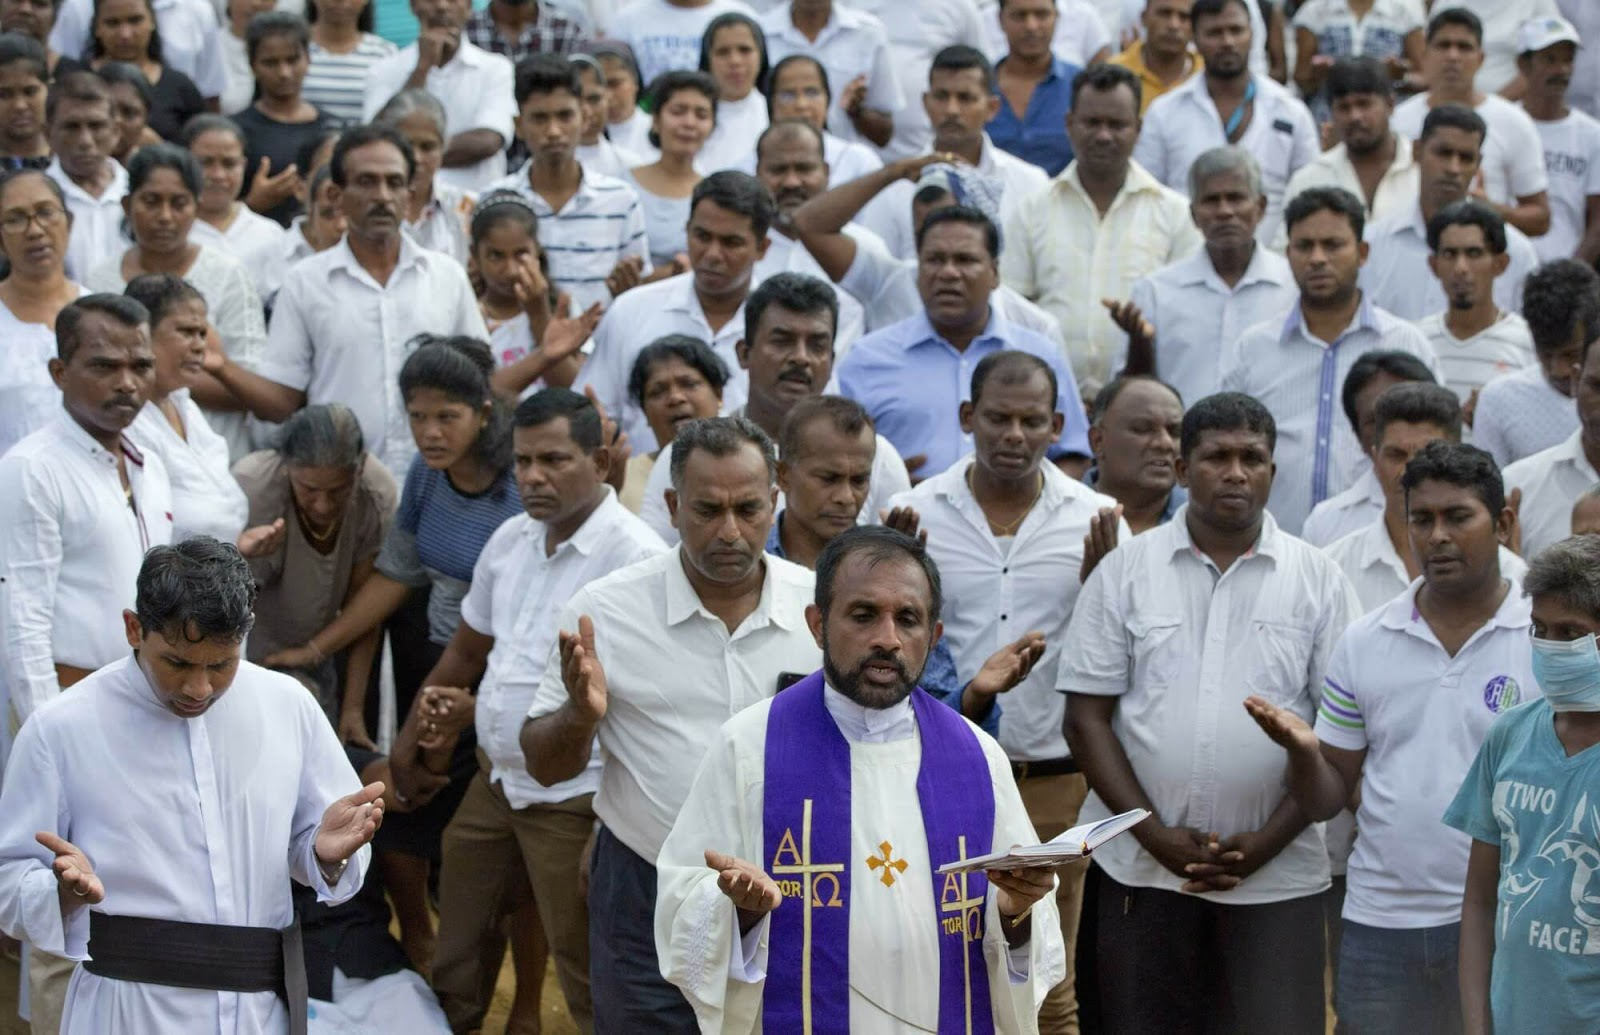 Sri Lanka shakes up top security posts after deadly bombings